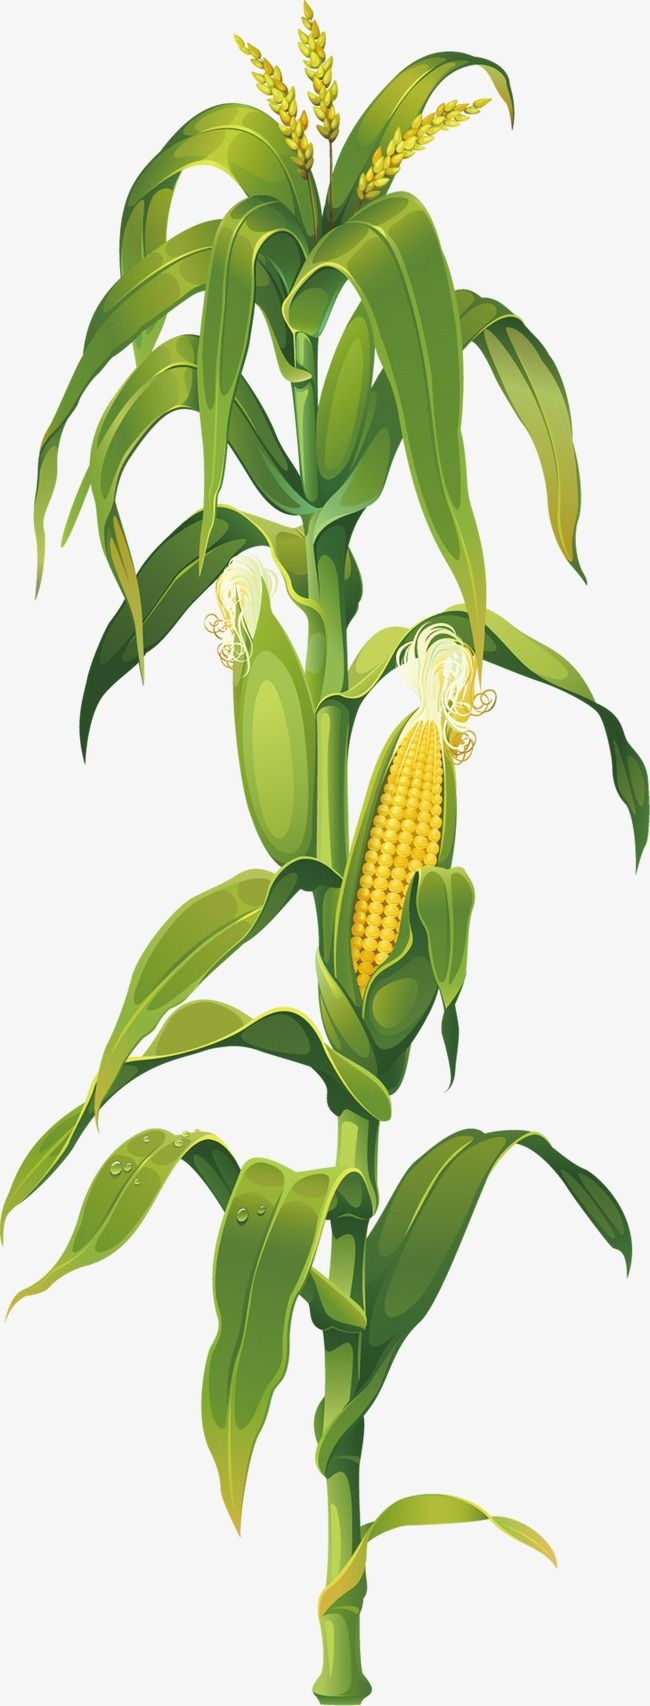 Corn Corn Clipart Green Leaves Corn Cobs Png And Vector With Transparent Background For Free Download Corn On Cob Corn Painting Corn Stalks